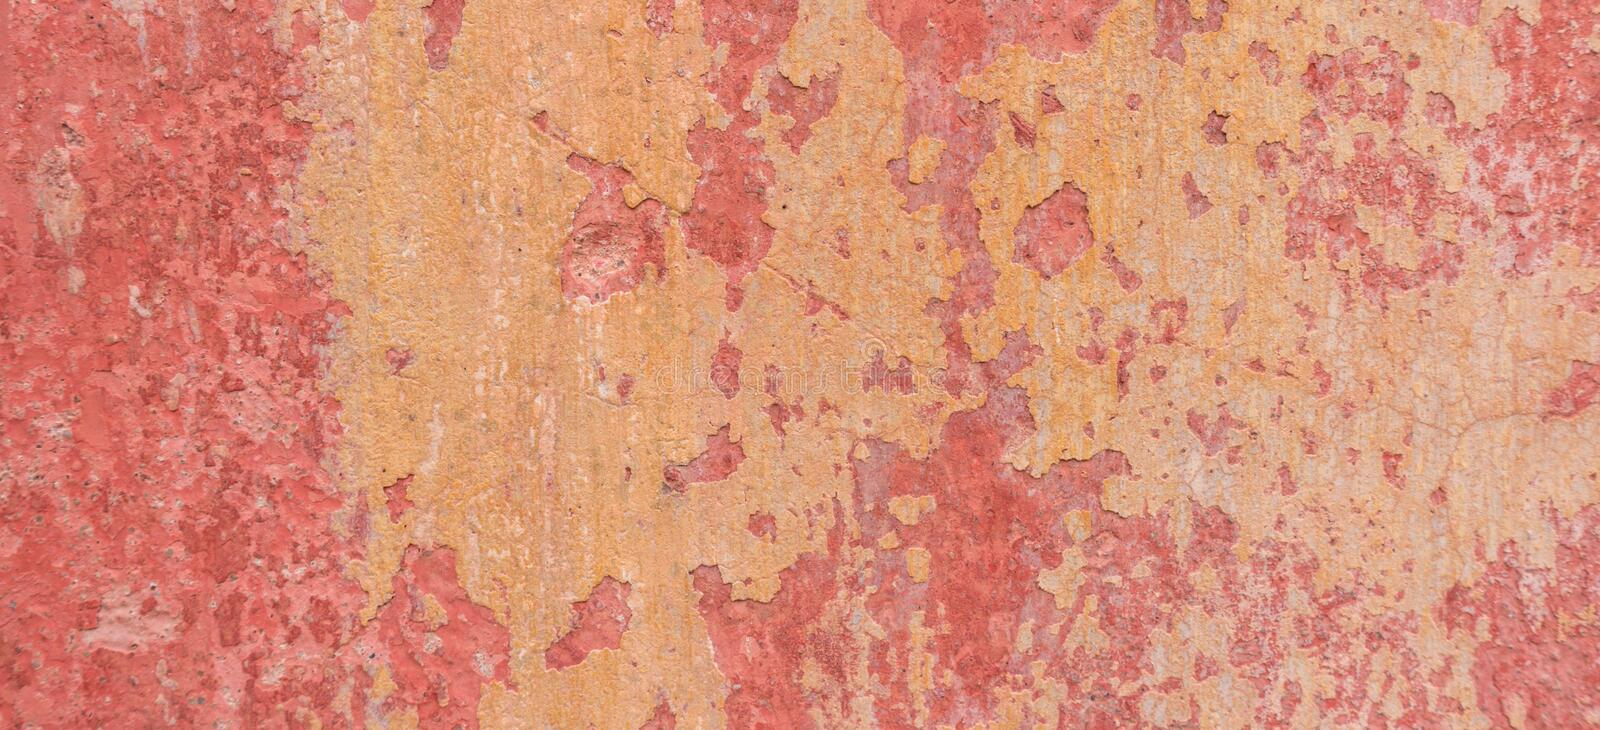 Old weathered painted wall background texture. Red dirty peeled plaster wall with falling off flakes of paint. royalty free stock image